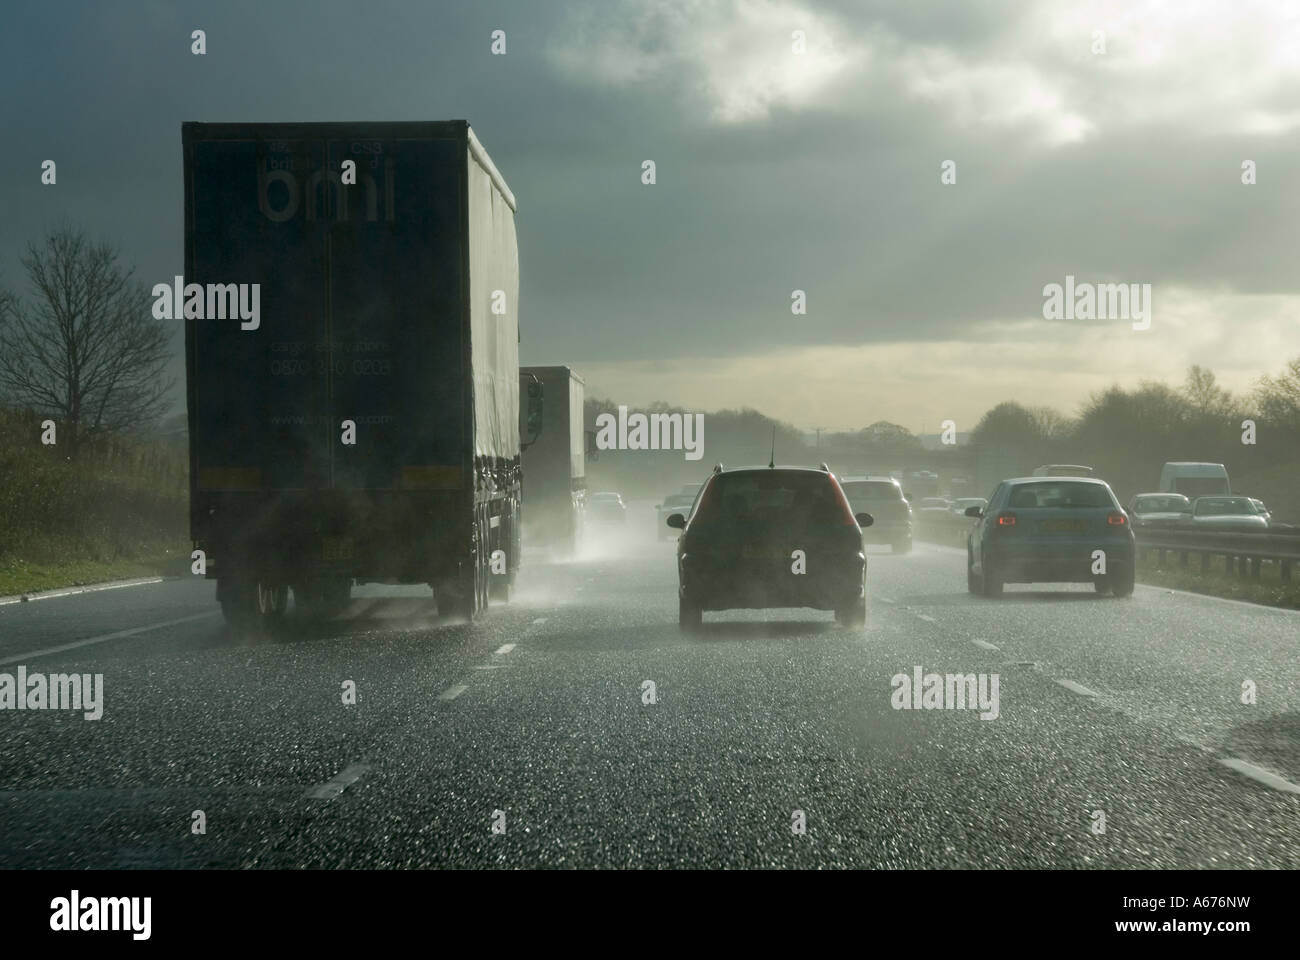 Winter motorway driving towards low sun after heavy rain shower poor visibility from spray - Stock Image